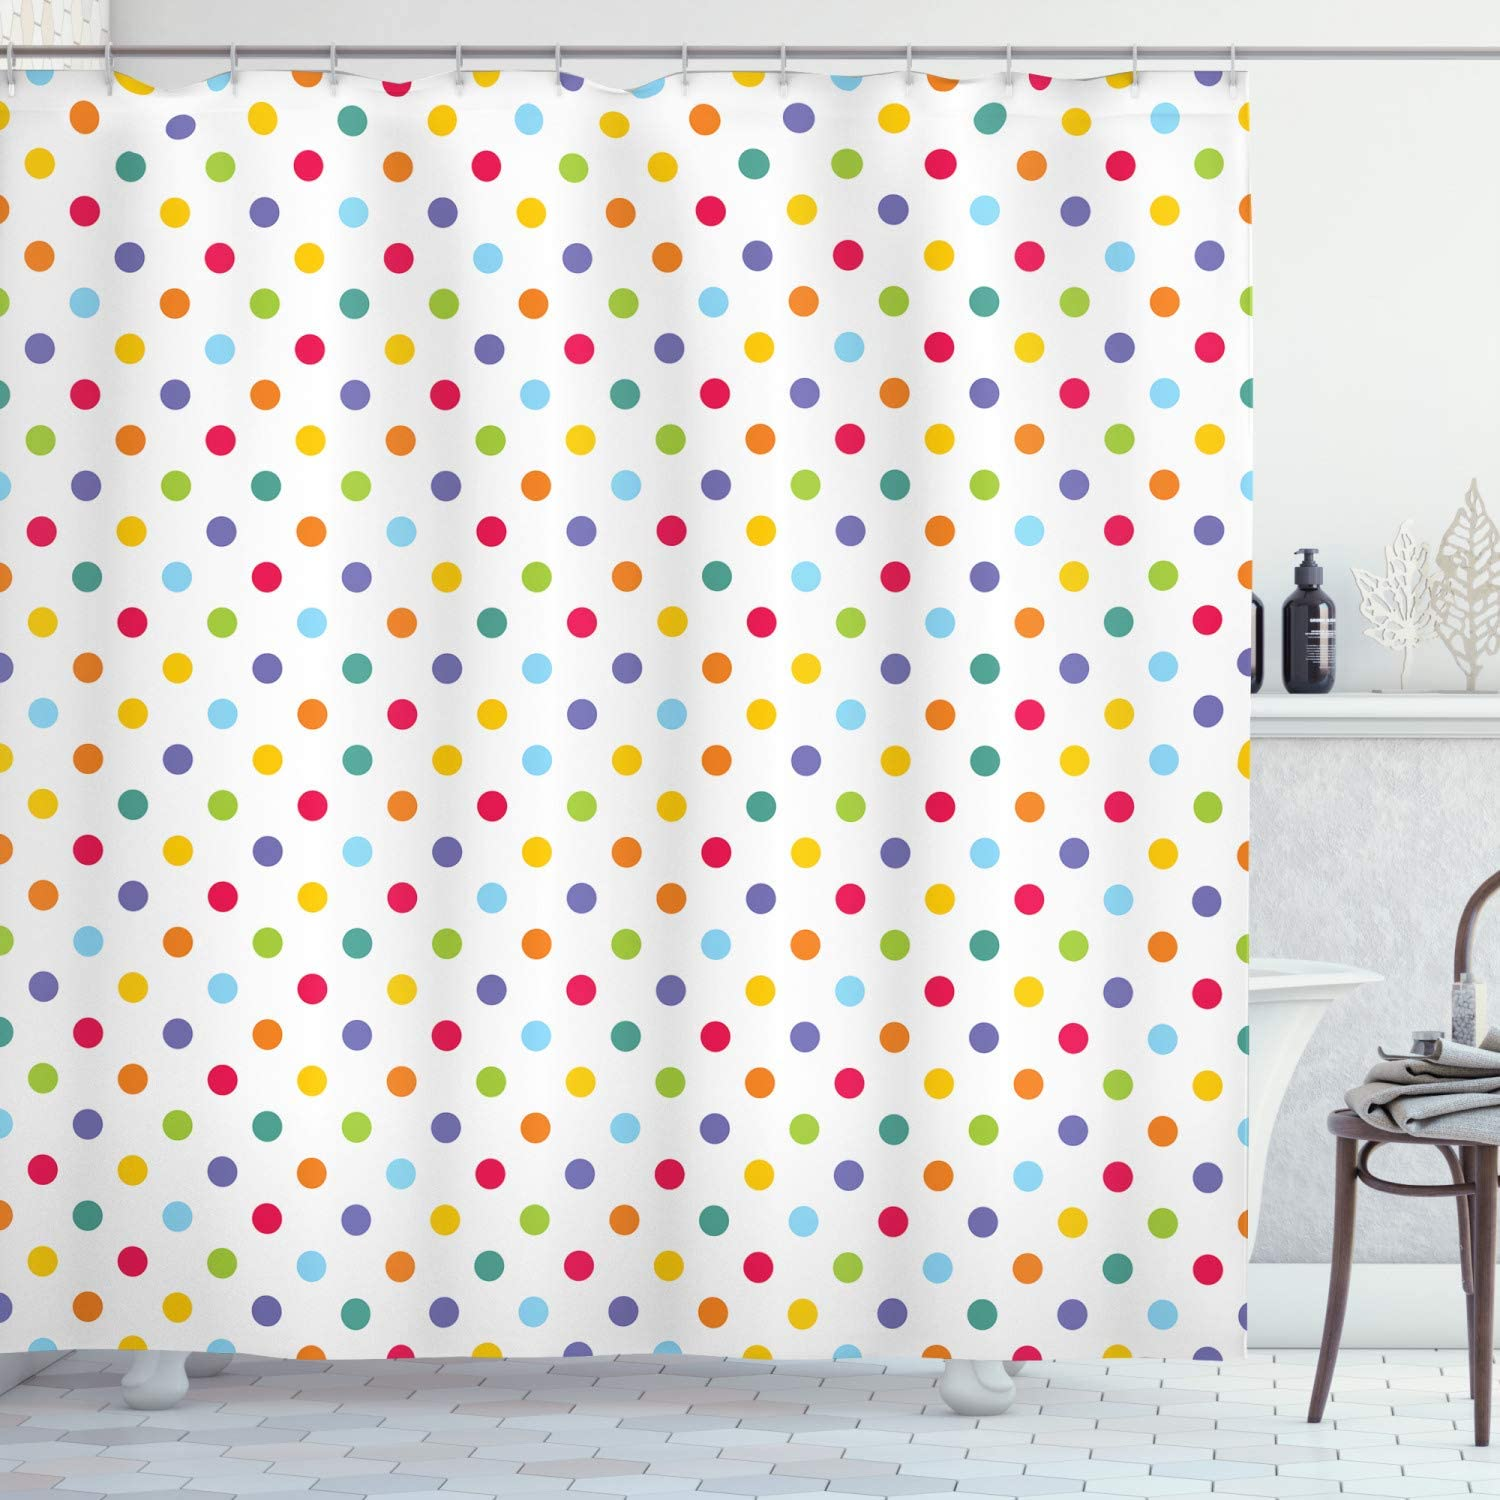 """Ambesonne Abstract Shower Curtain, Colorful Polka Dots Round Circular Vintage Fashion Girls Feminine Baby Design, Cloth Fabric Bathroom Decor Set with Hooks, 75"""" Long, Whiite Purple"""